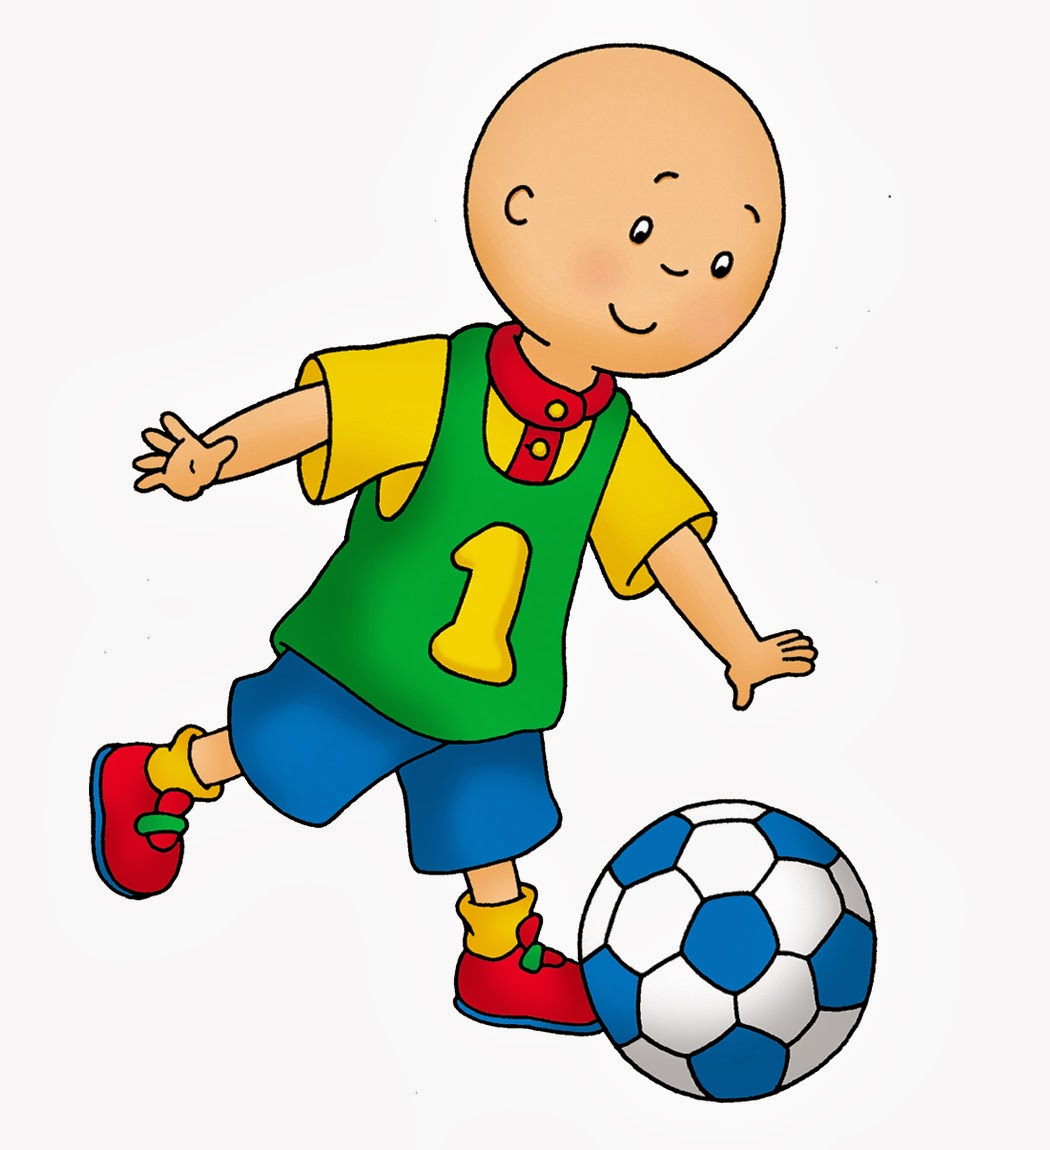 cartoon characters caillou pictures image clipart caillou caillou clipart